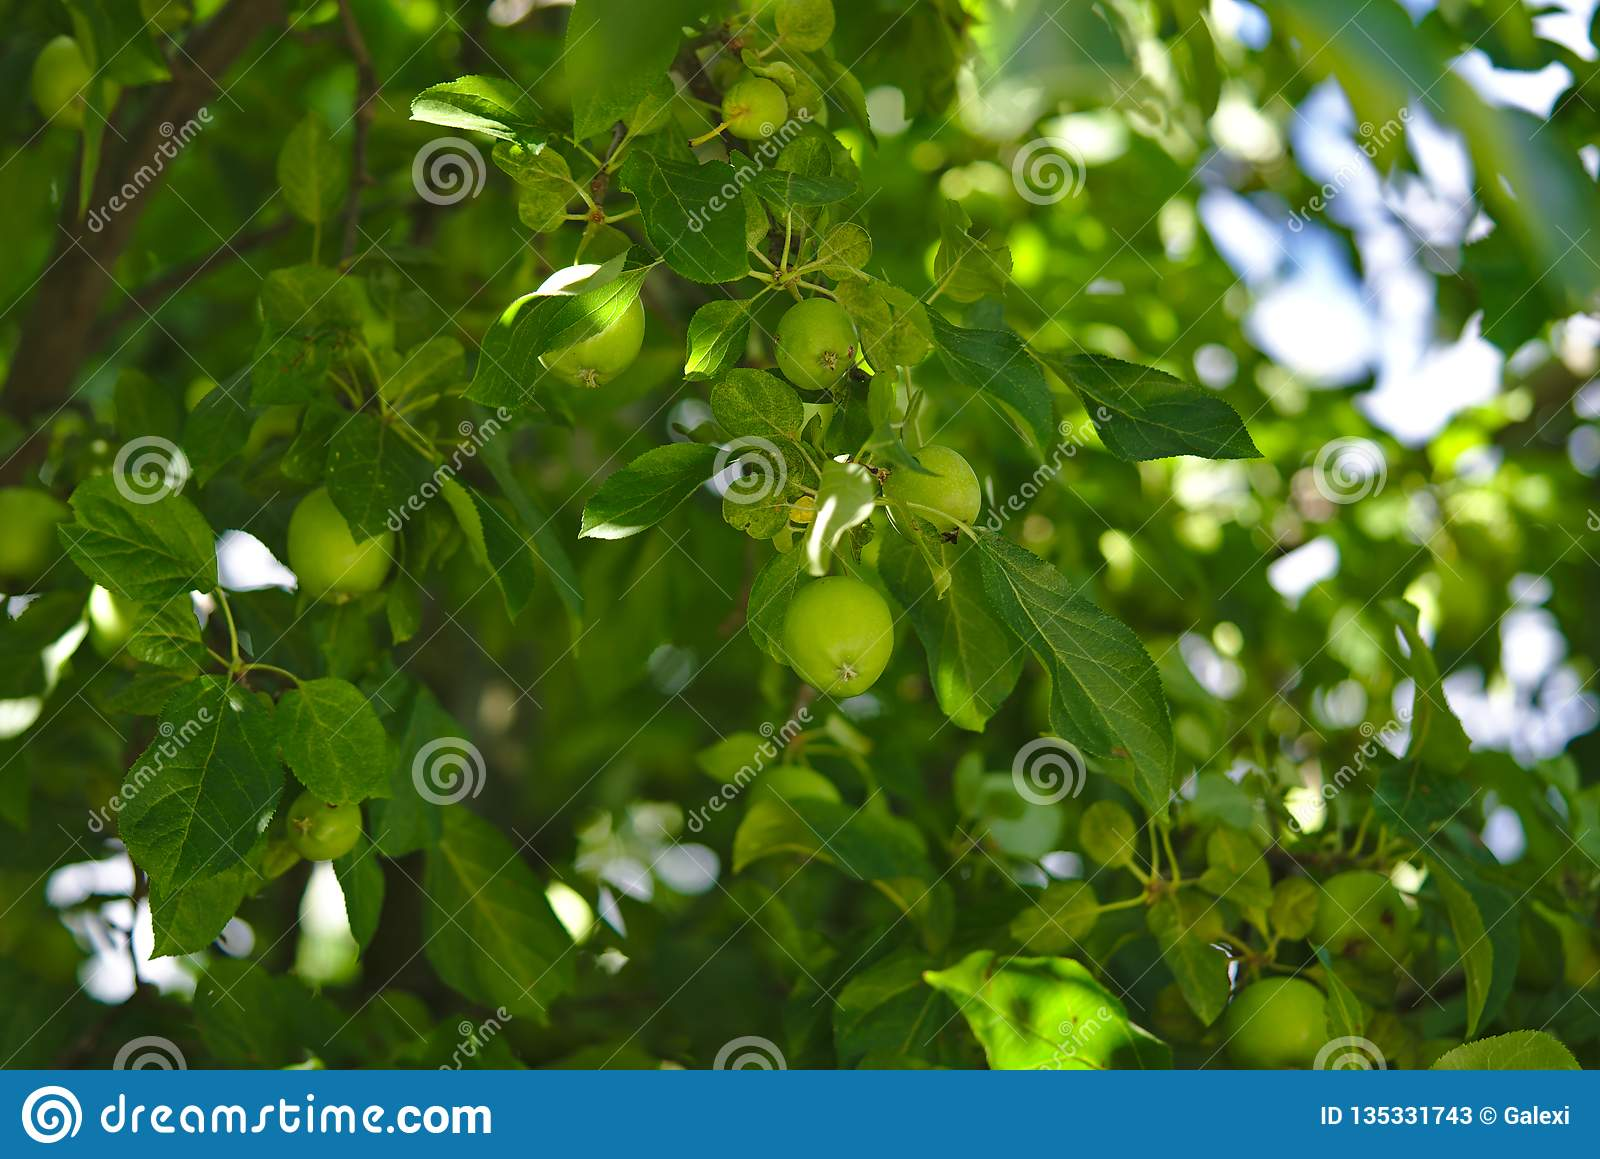 Green apple tree with lots of apples growing